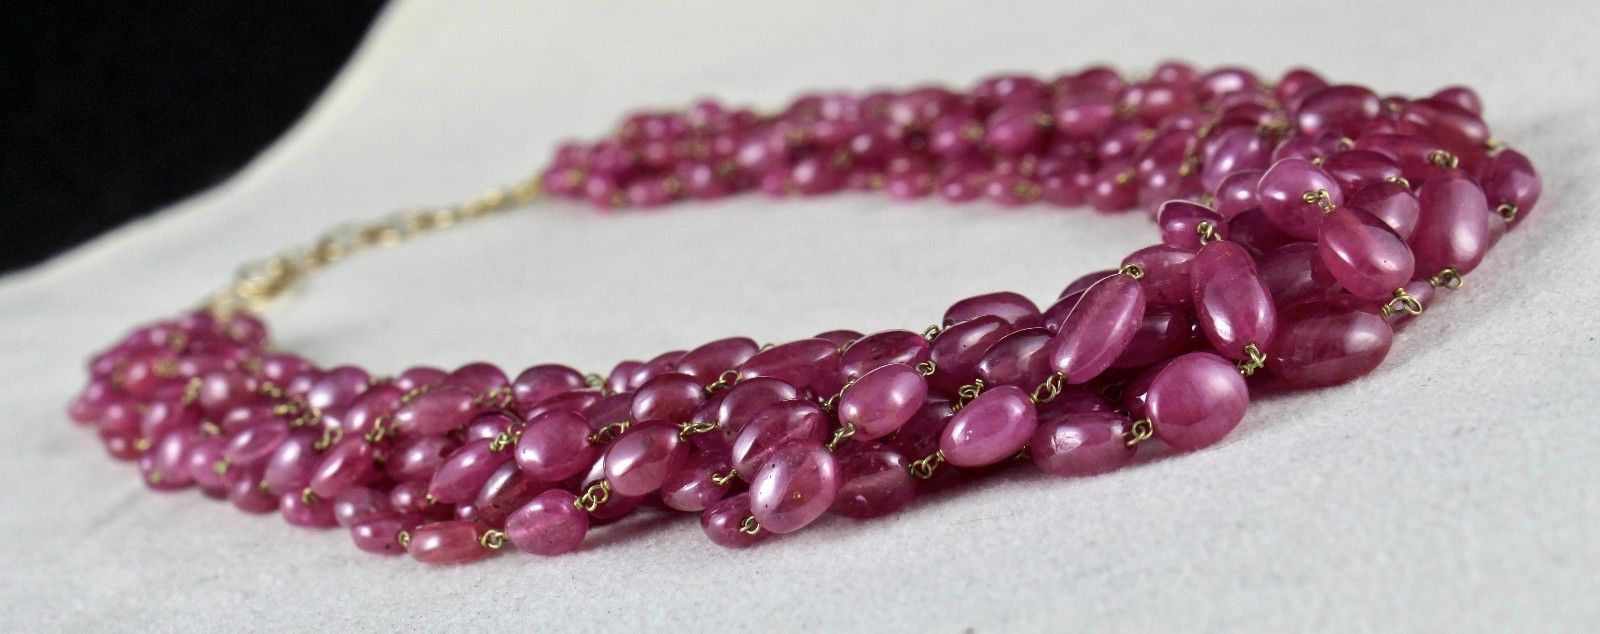 PINK RUBY BEADS CABOCHON 9 LINE 780 CARATS GEMSTONE 18K GOLD LADIES NECKLACE image 8